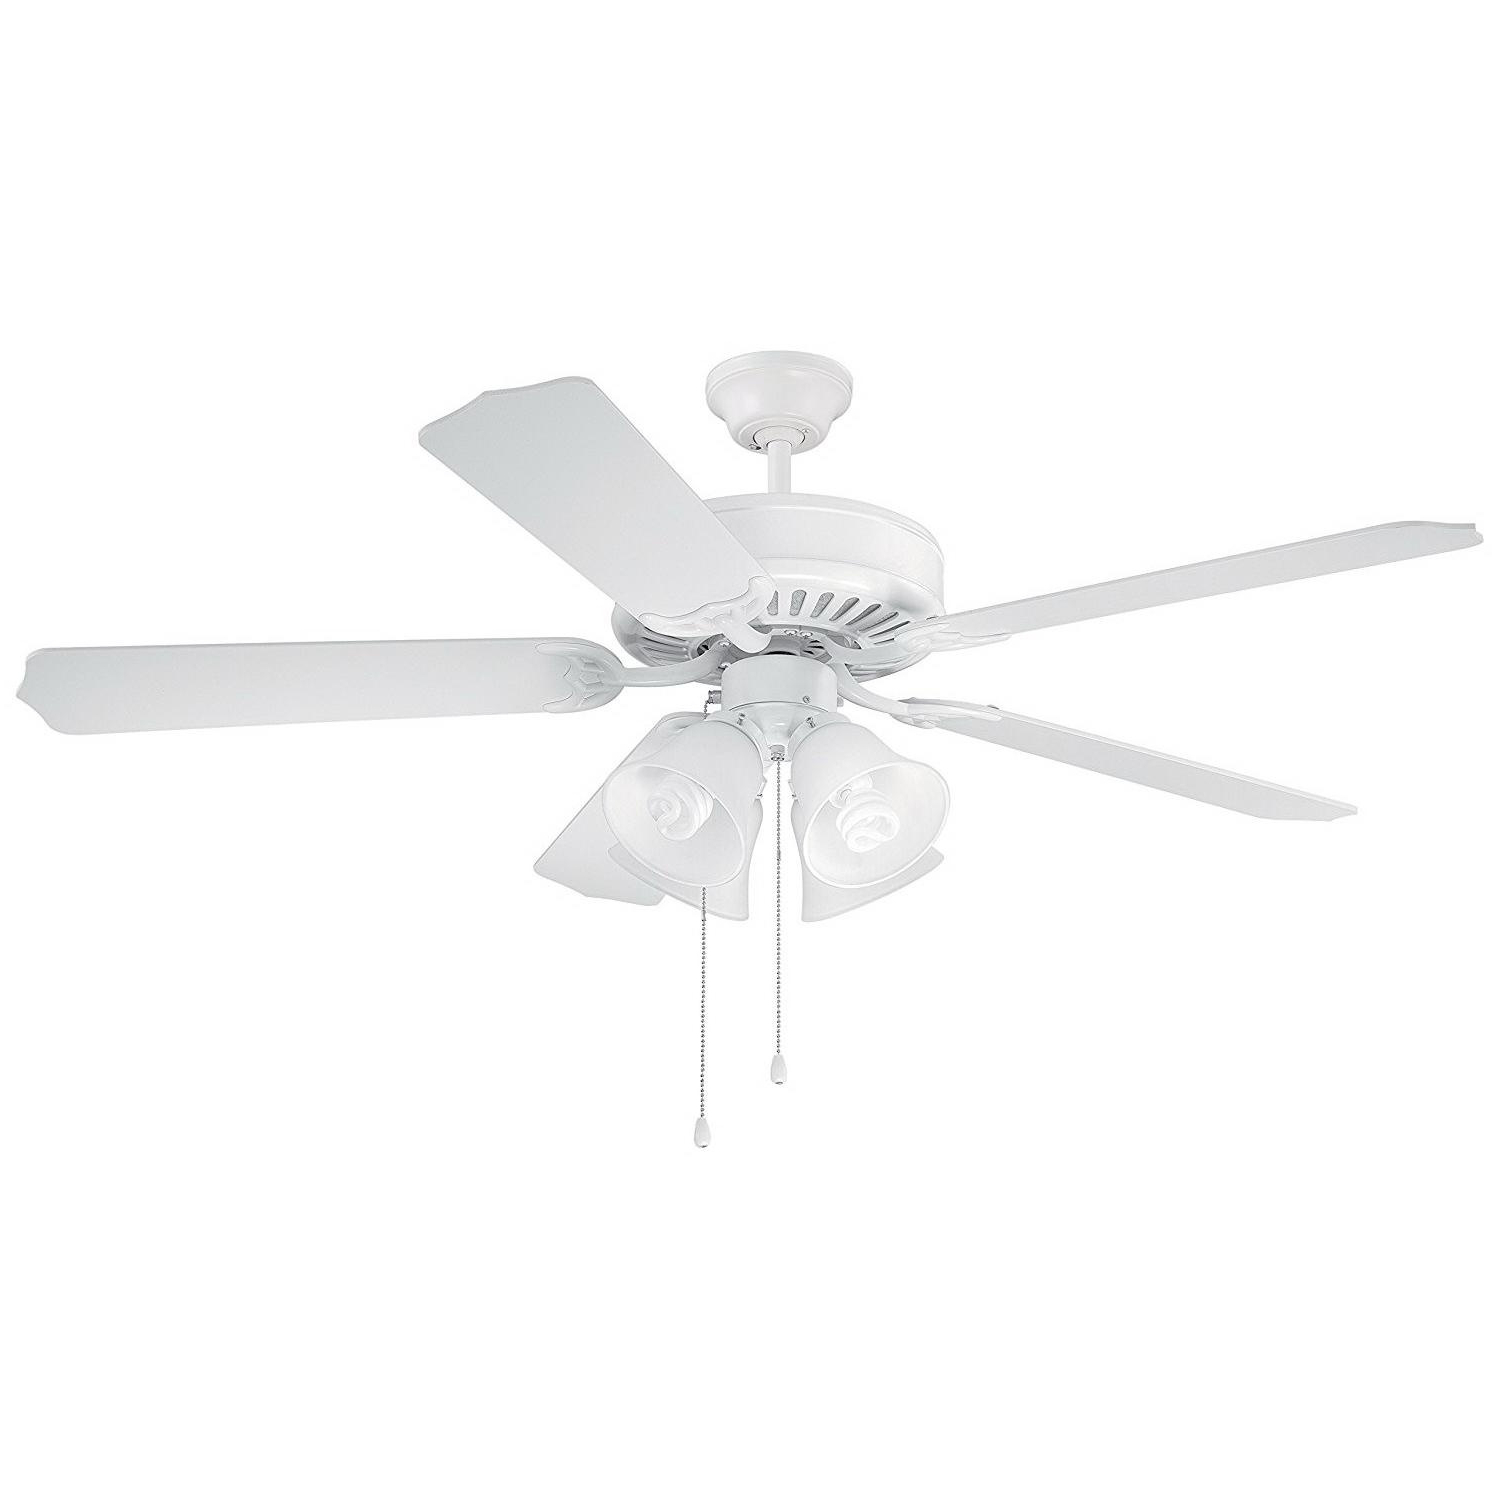 Builder 5 Blade Ceiling Fans Throughout Famous Craftmade C203w Pro Builder 203 Ceiling Fan With Light 52 Inch 5 Blade 3 Speed White (View 19 of 20)